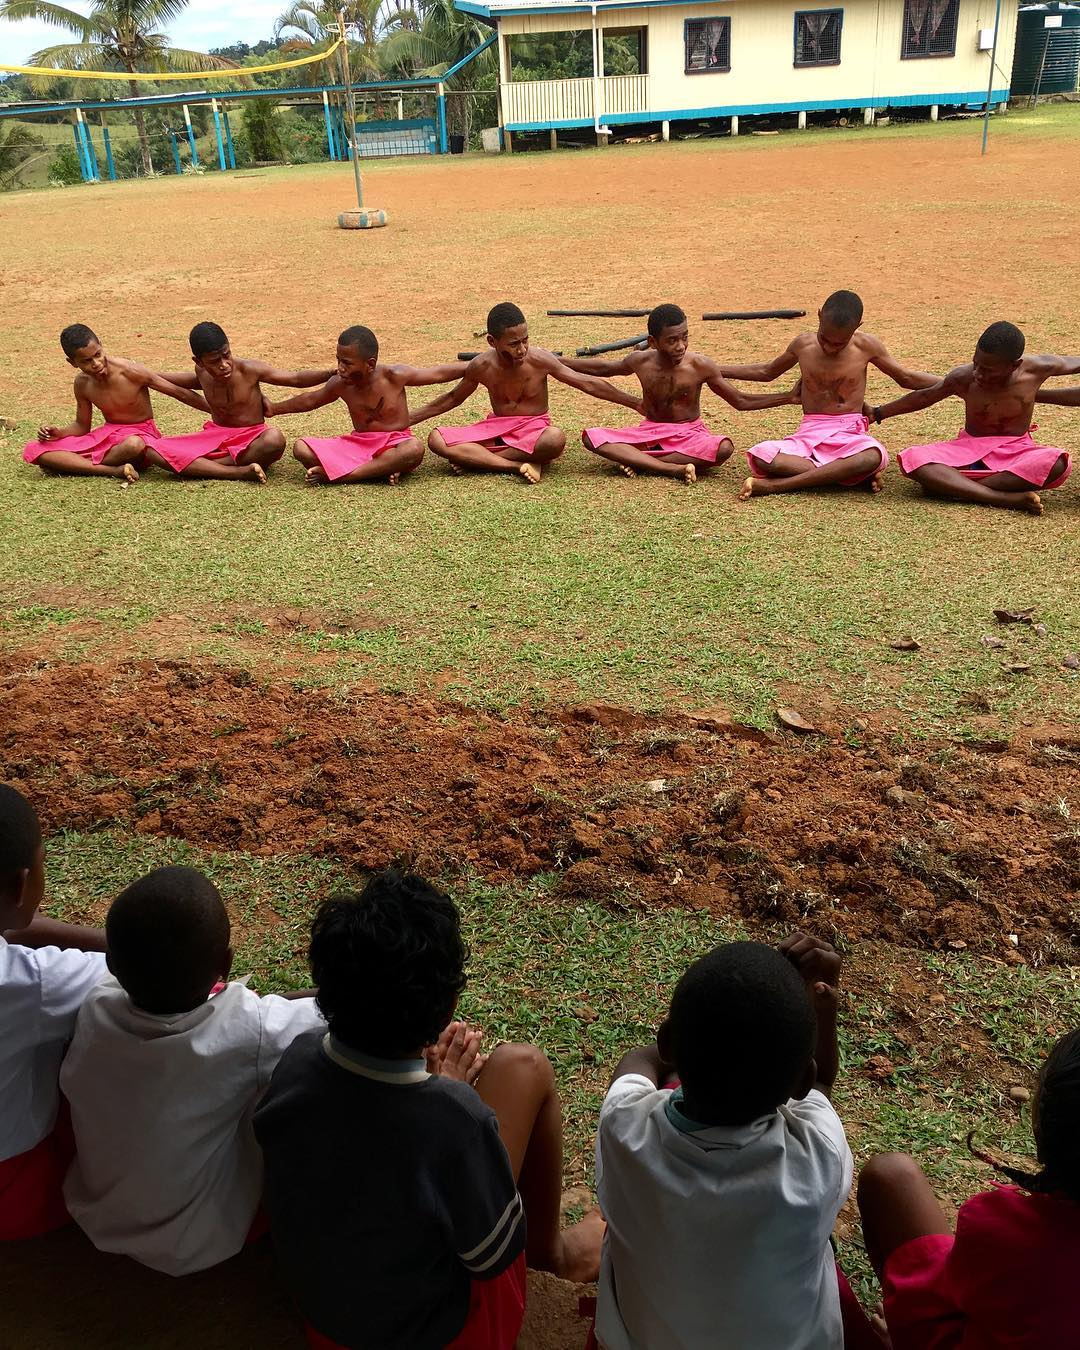 Fijian ceremony in public school with traditional sulu